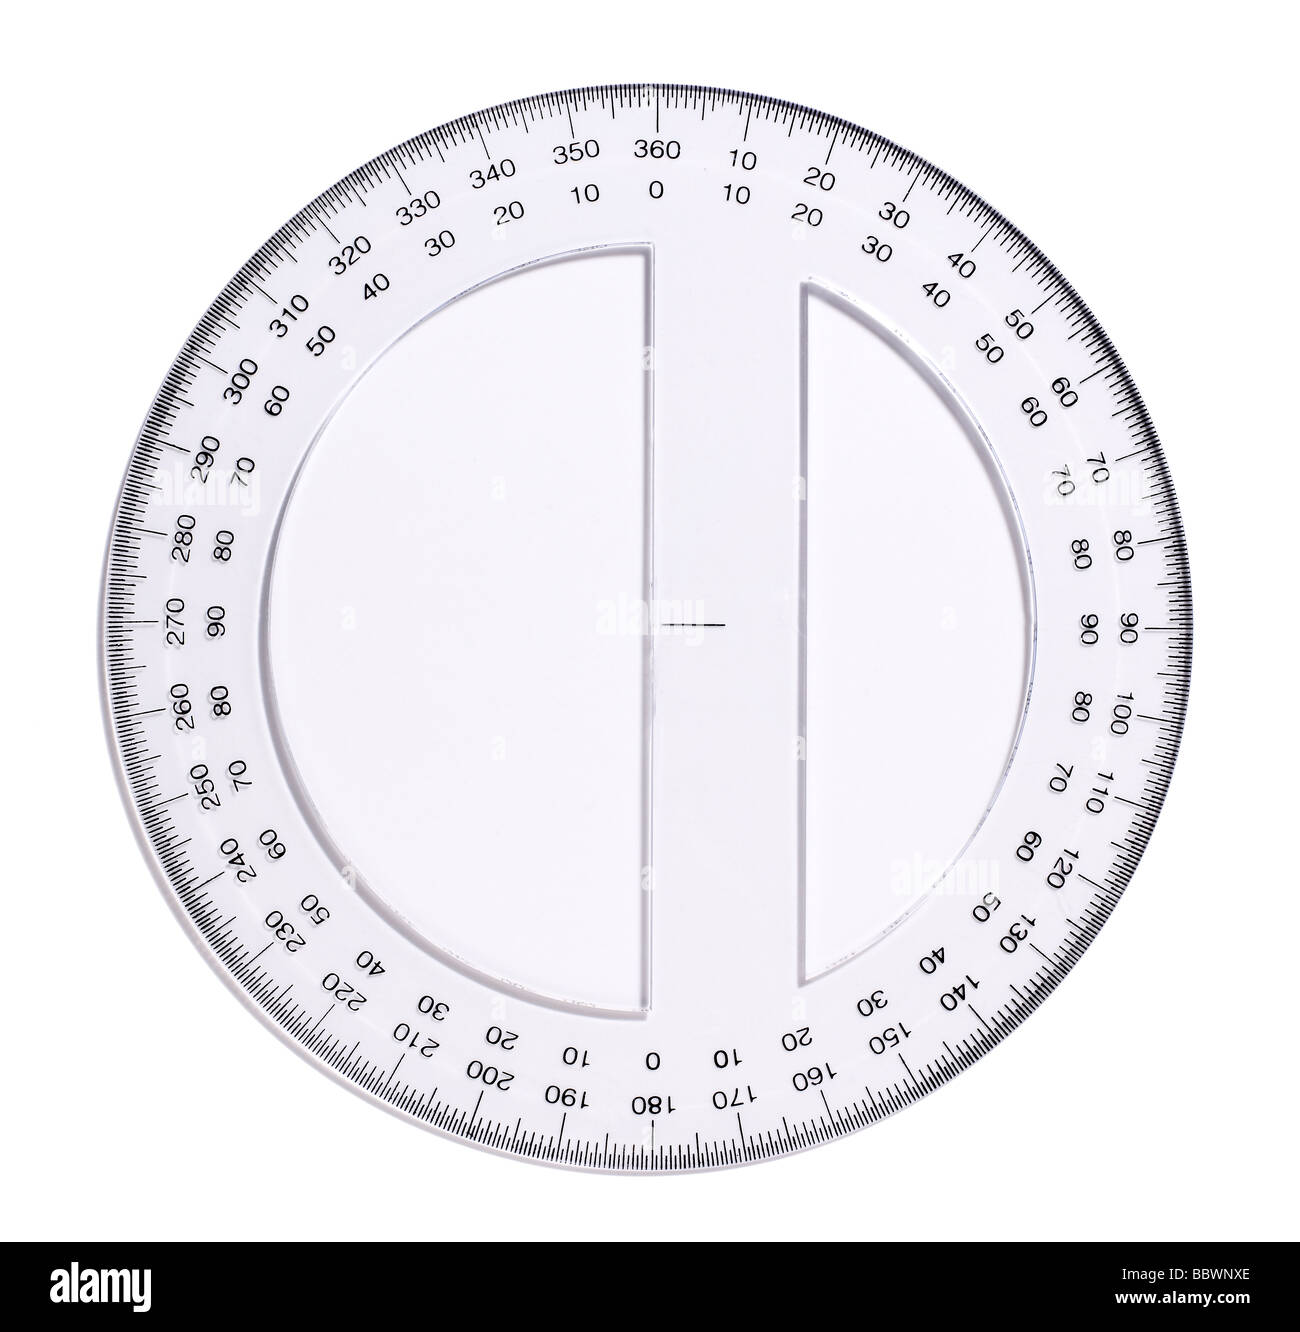 clear Plastic Measuring devices protractor protractors - Stock Image